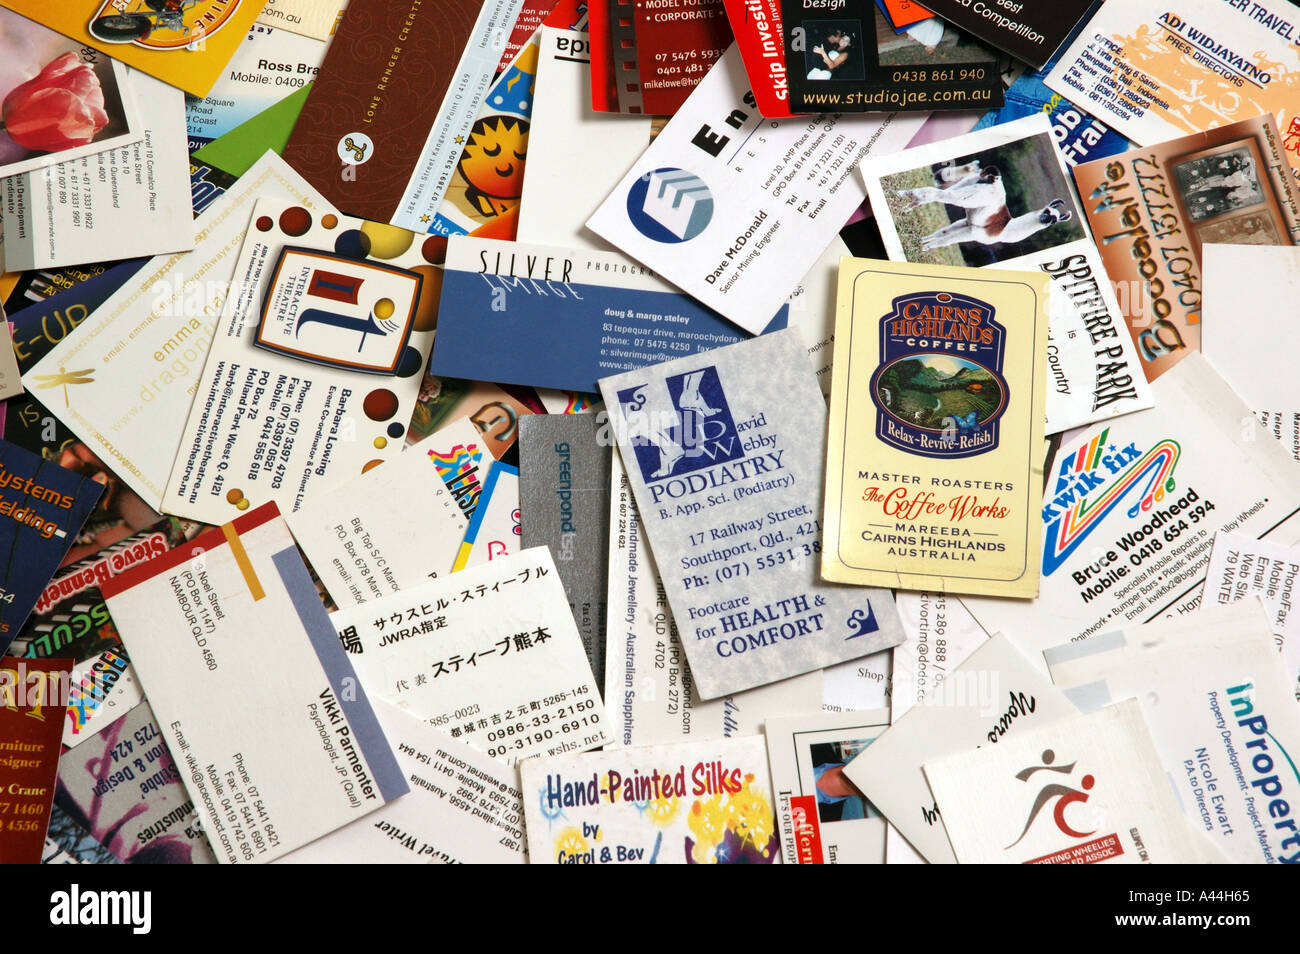 pile of mixed business cards dsca 2044 Stock Photo: 3567972 - Alamy